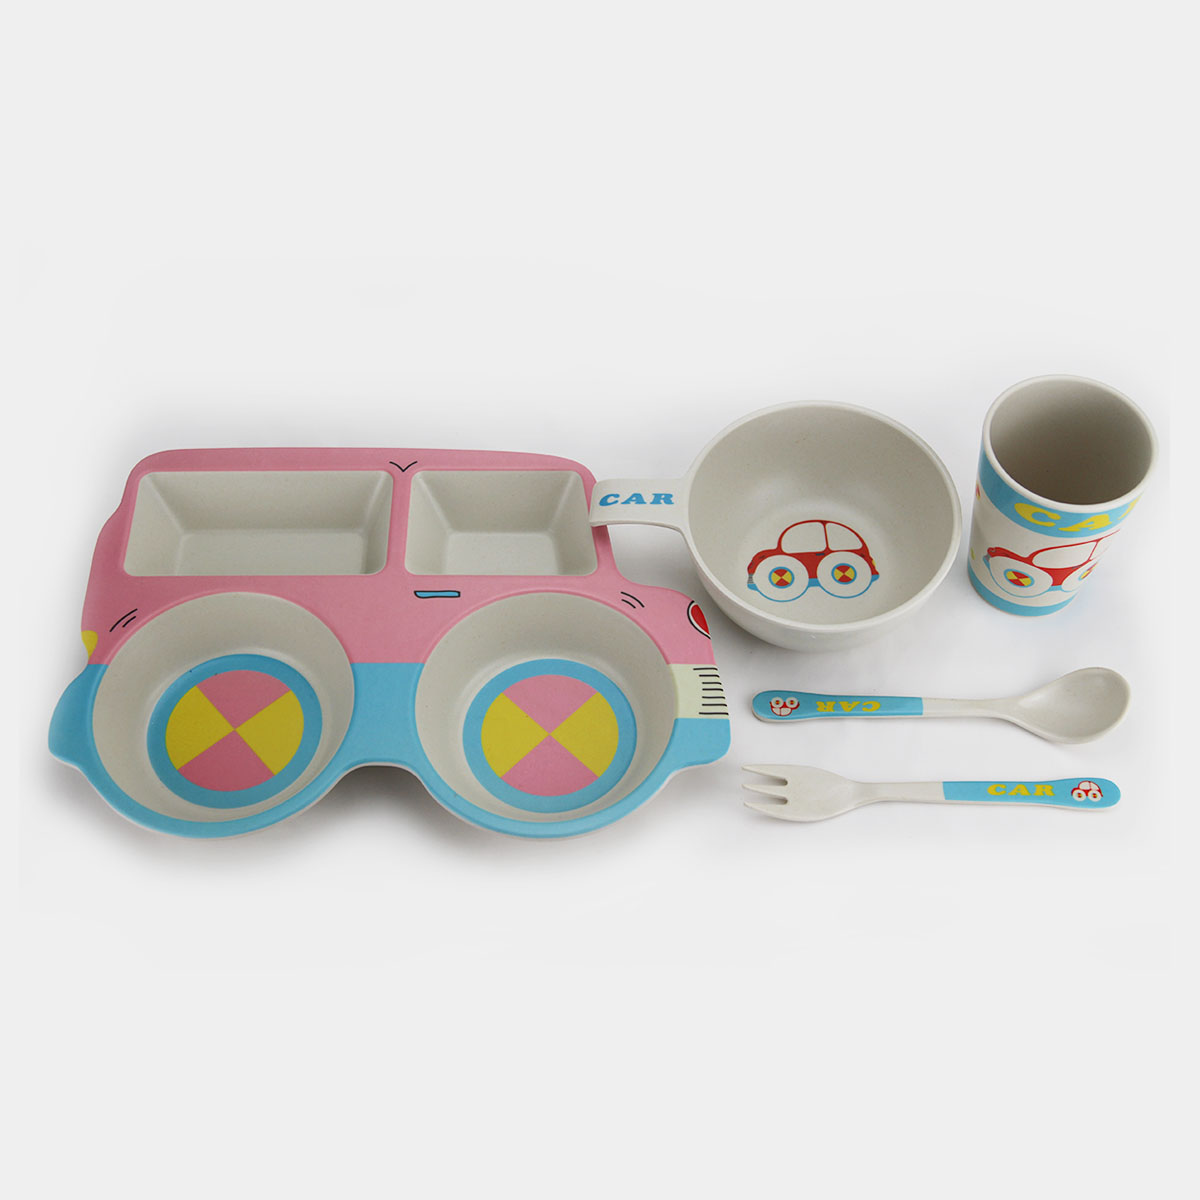 5PC Dinnerware Set Bamboo Fiber Kids Tableware Set